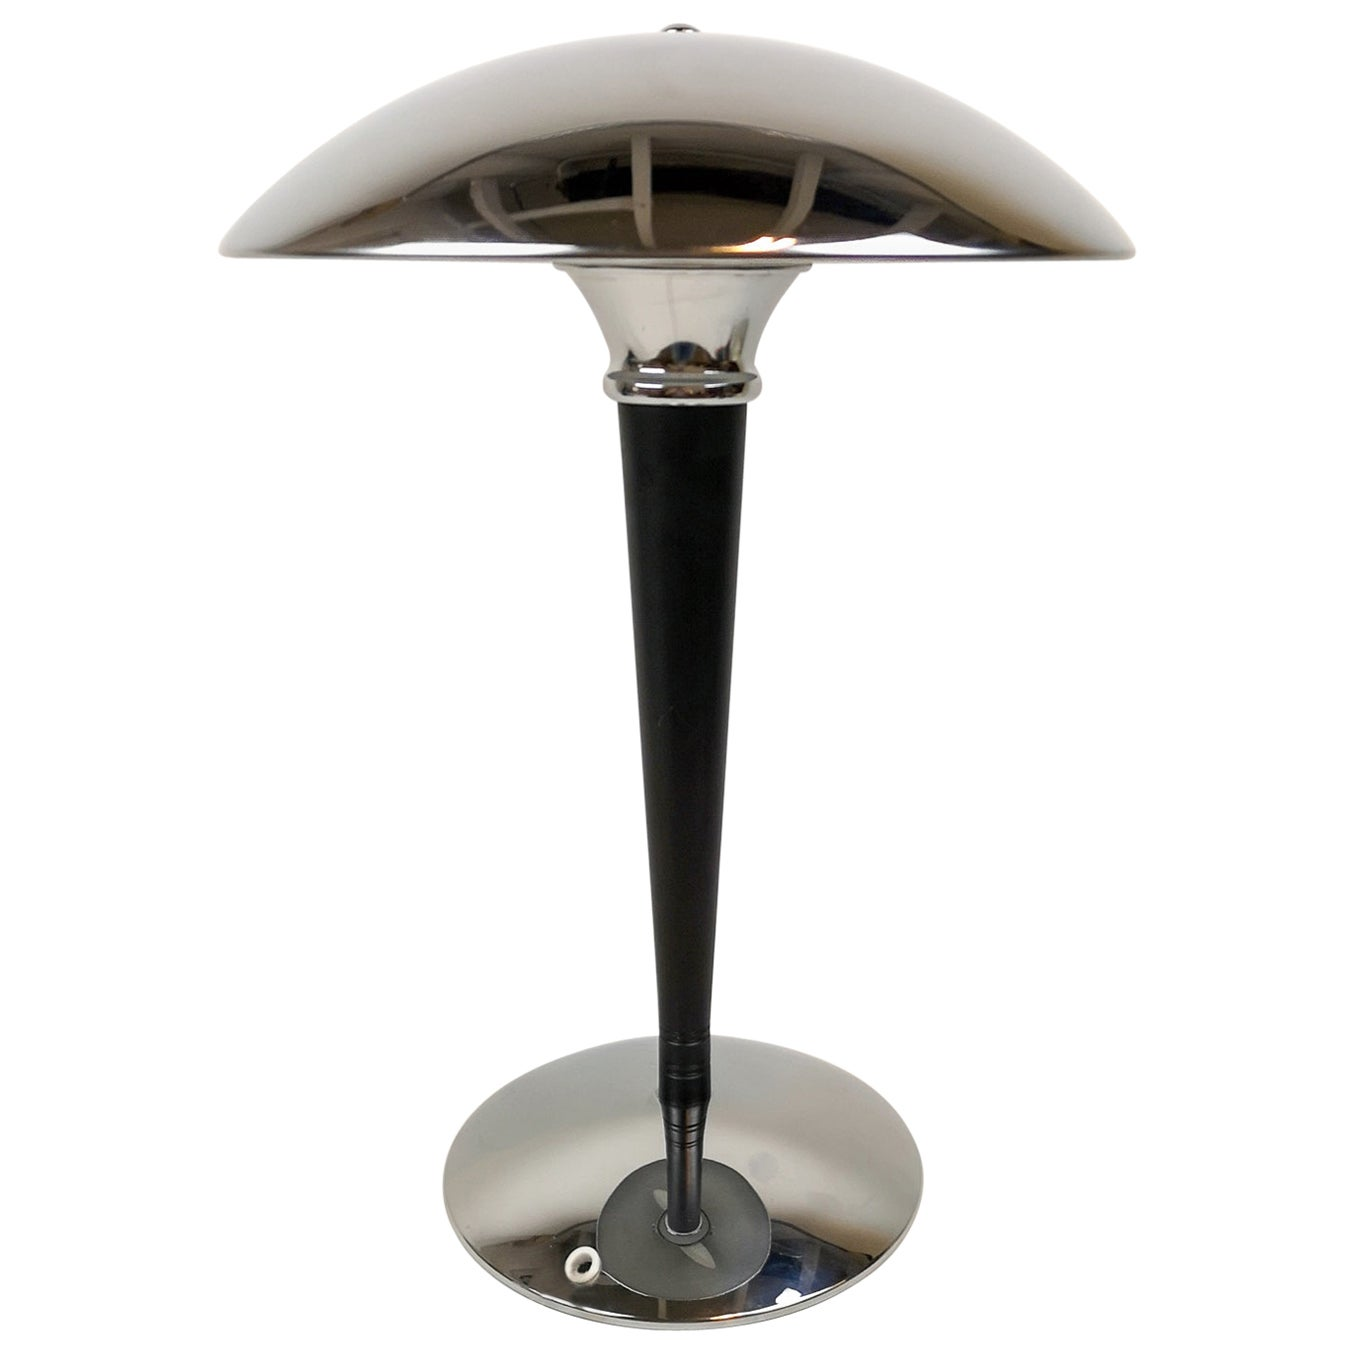 Ikea Table Lamps 6 For Sale At 1stdibs